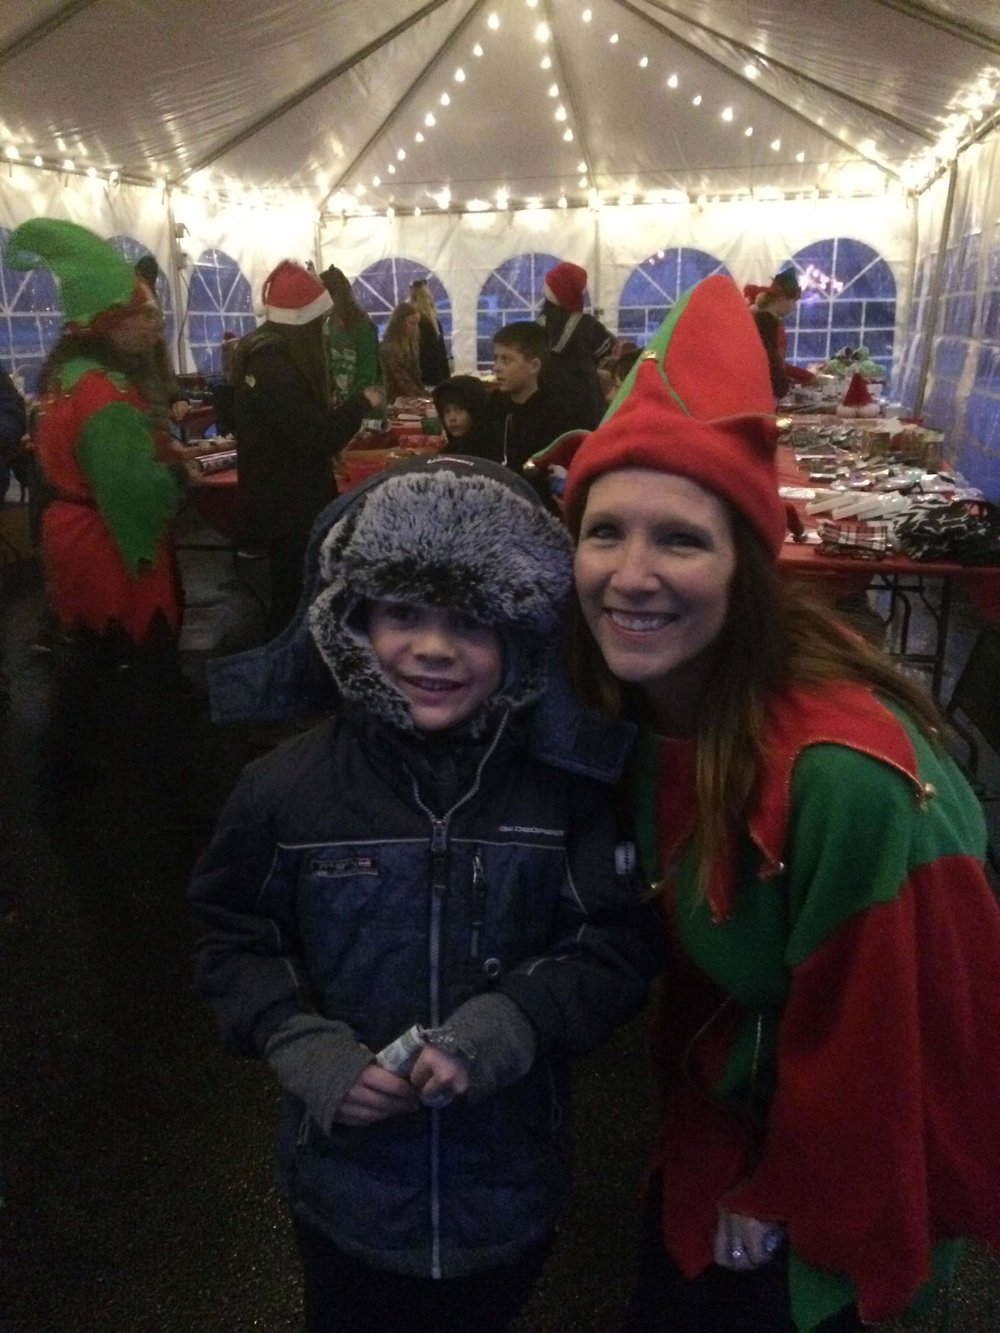 - Max with his elf, who helped him pick out gifts for Steve and I.